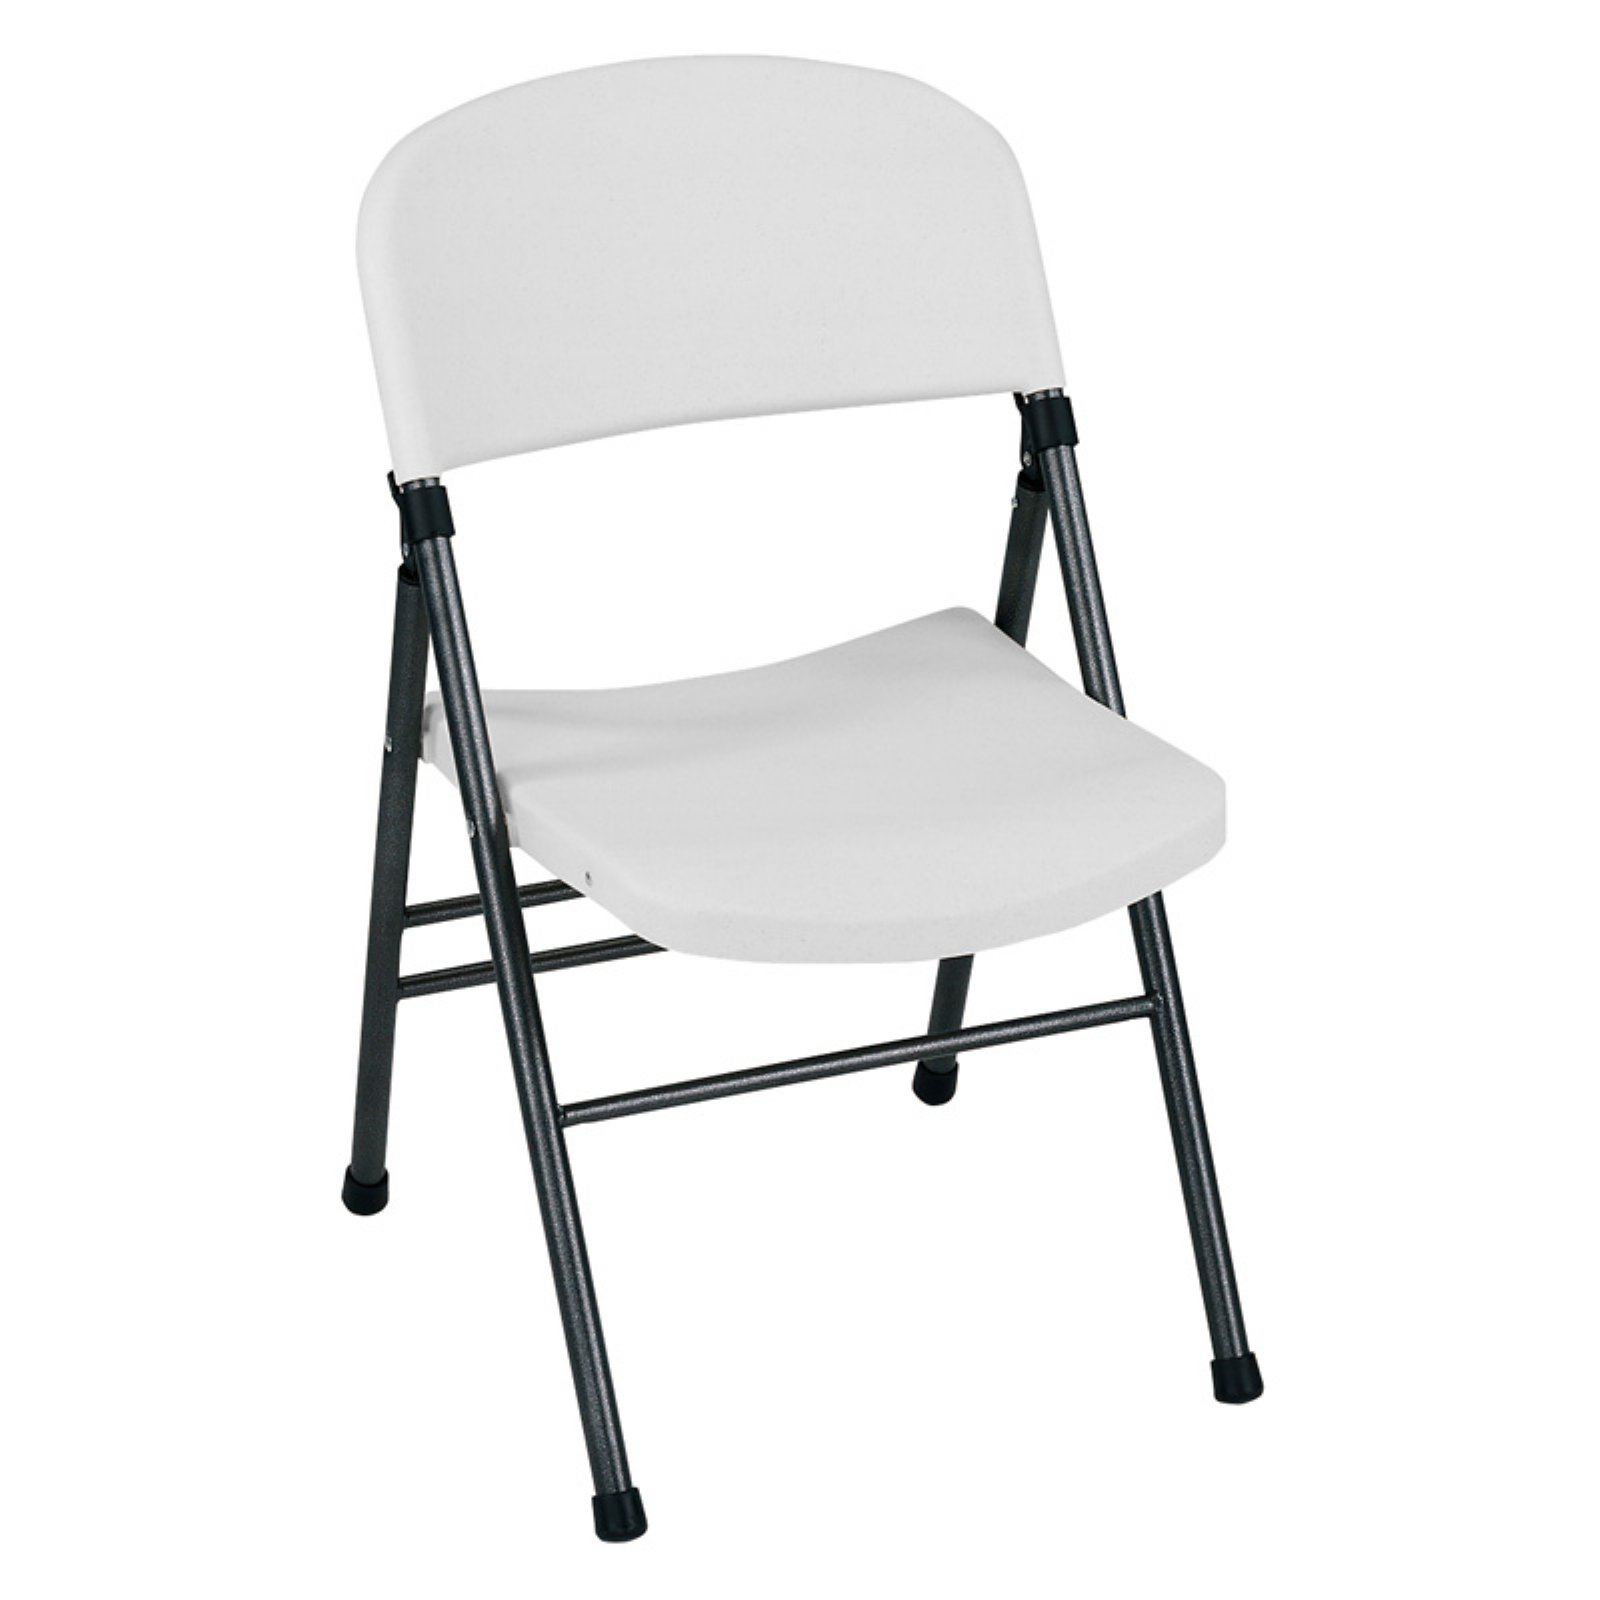 Cosco Folding Chair Cosco Commercial Molded Resin Folding Chair White Set Of 4